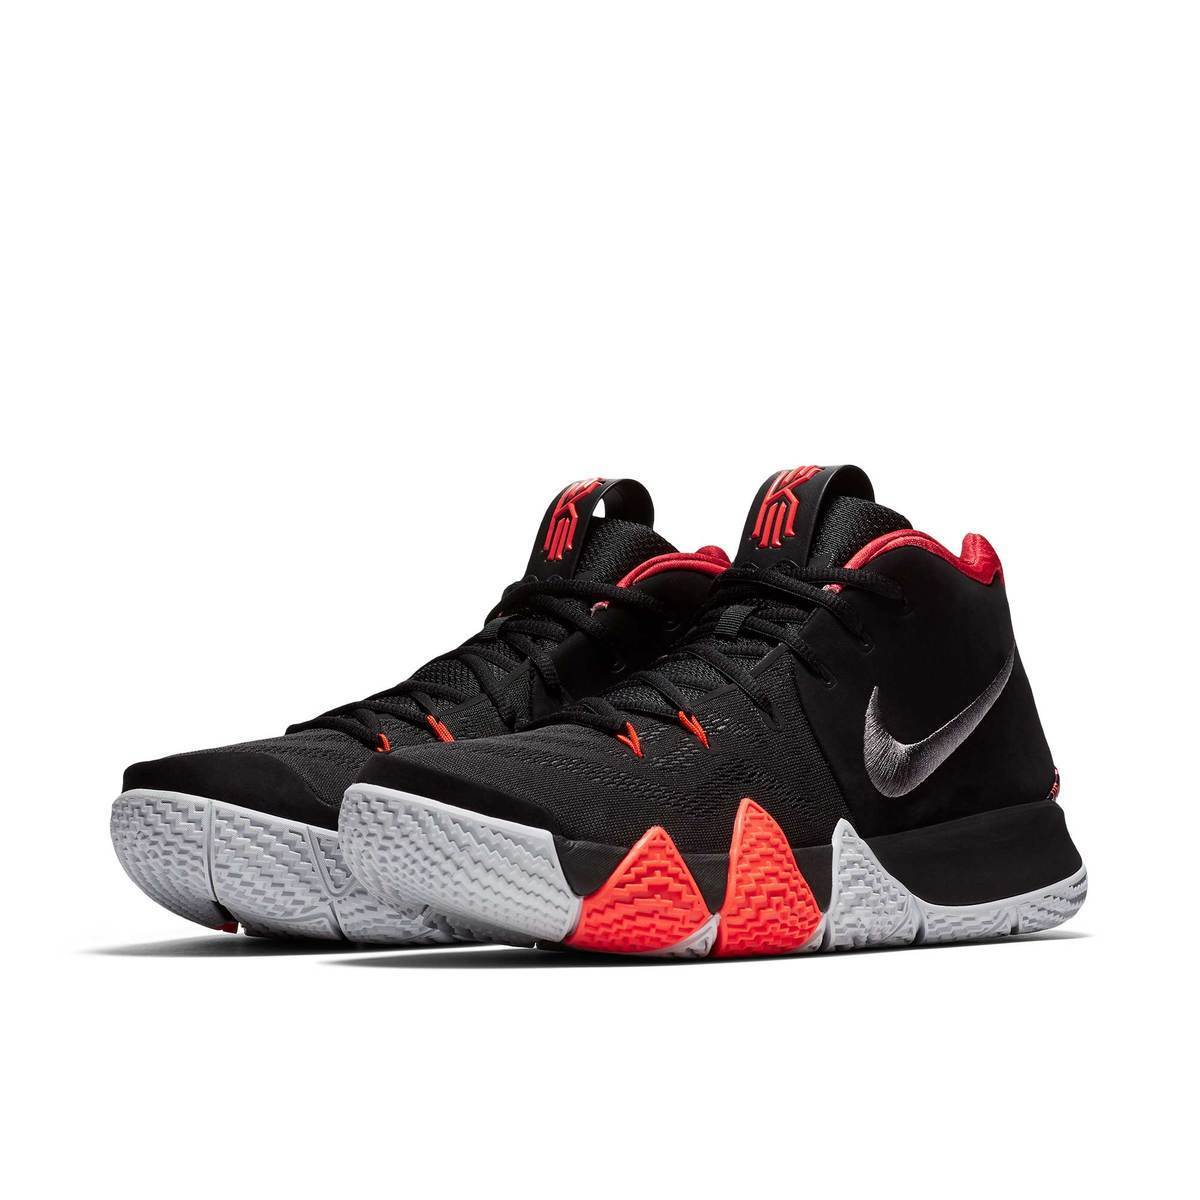 pretty nice 7a258 2be17 Nike New Arrival Kyrie 4 Ep Original Men Basketball Shoes Hiking Sport  Outdoor Sneakers  943807-in Basketball Shoes from Sports   Entertainment on  ...